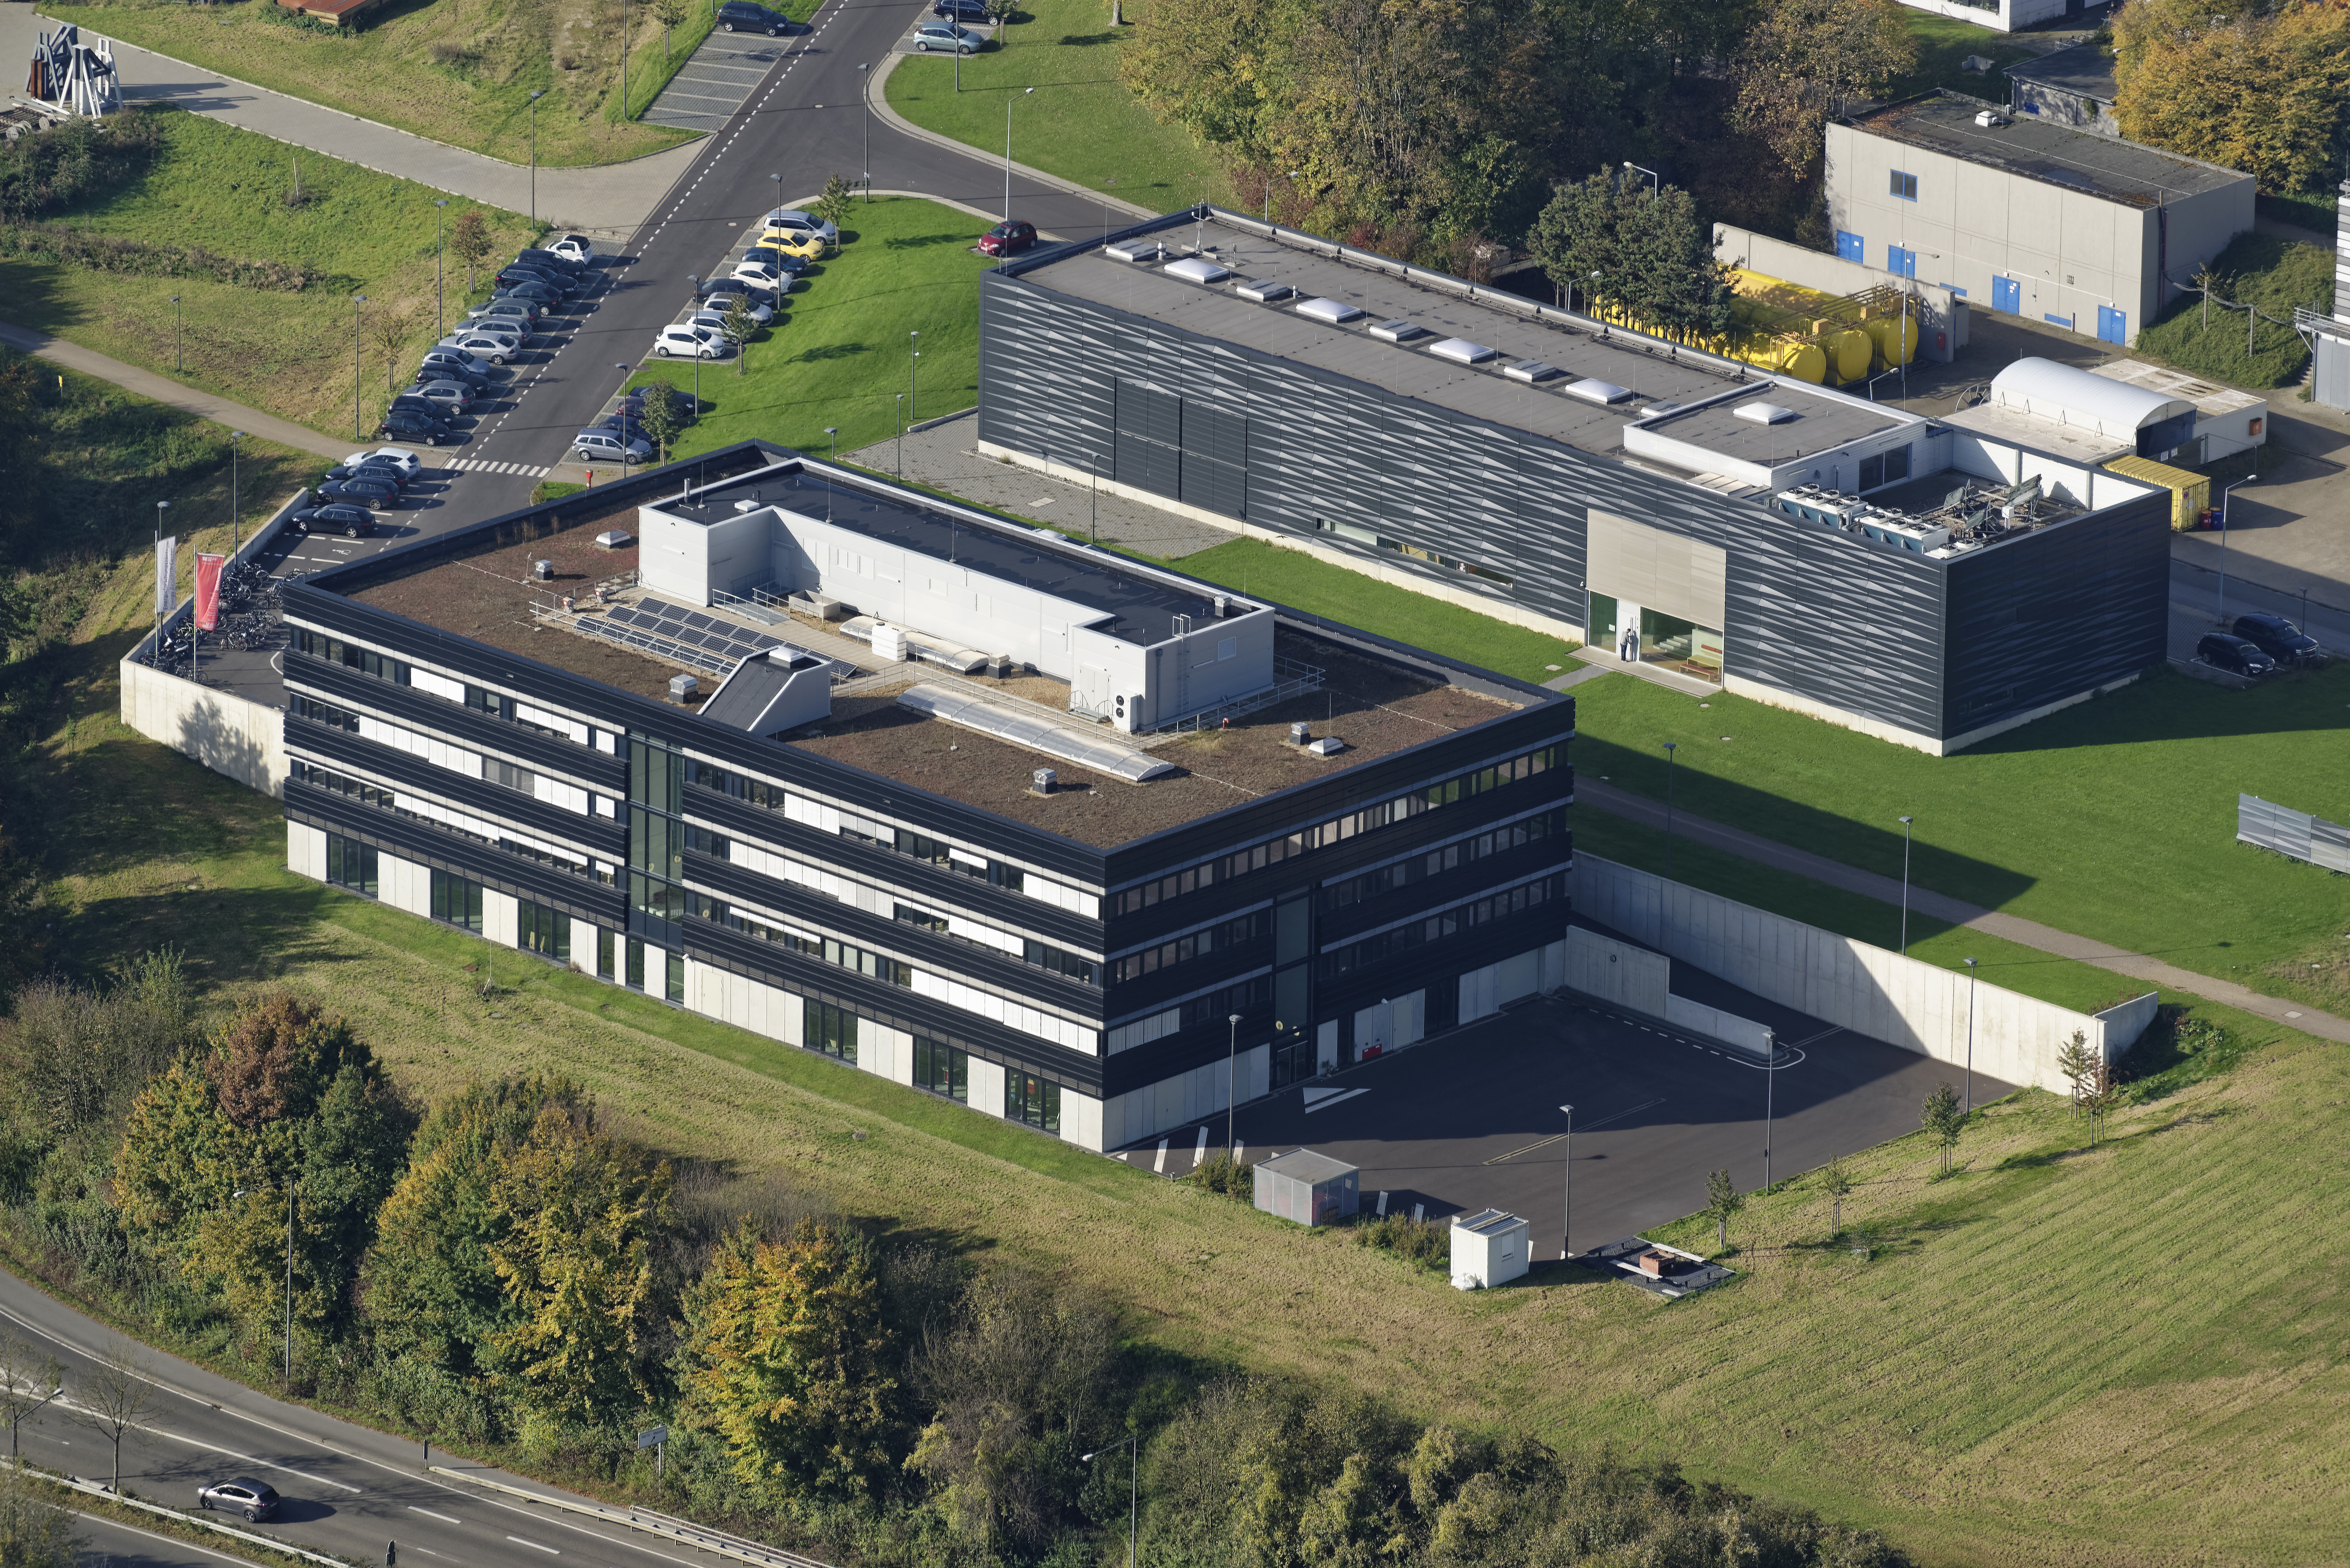 Image flight of the E.ON ERC building